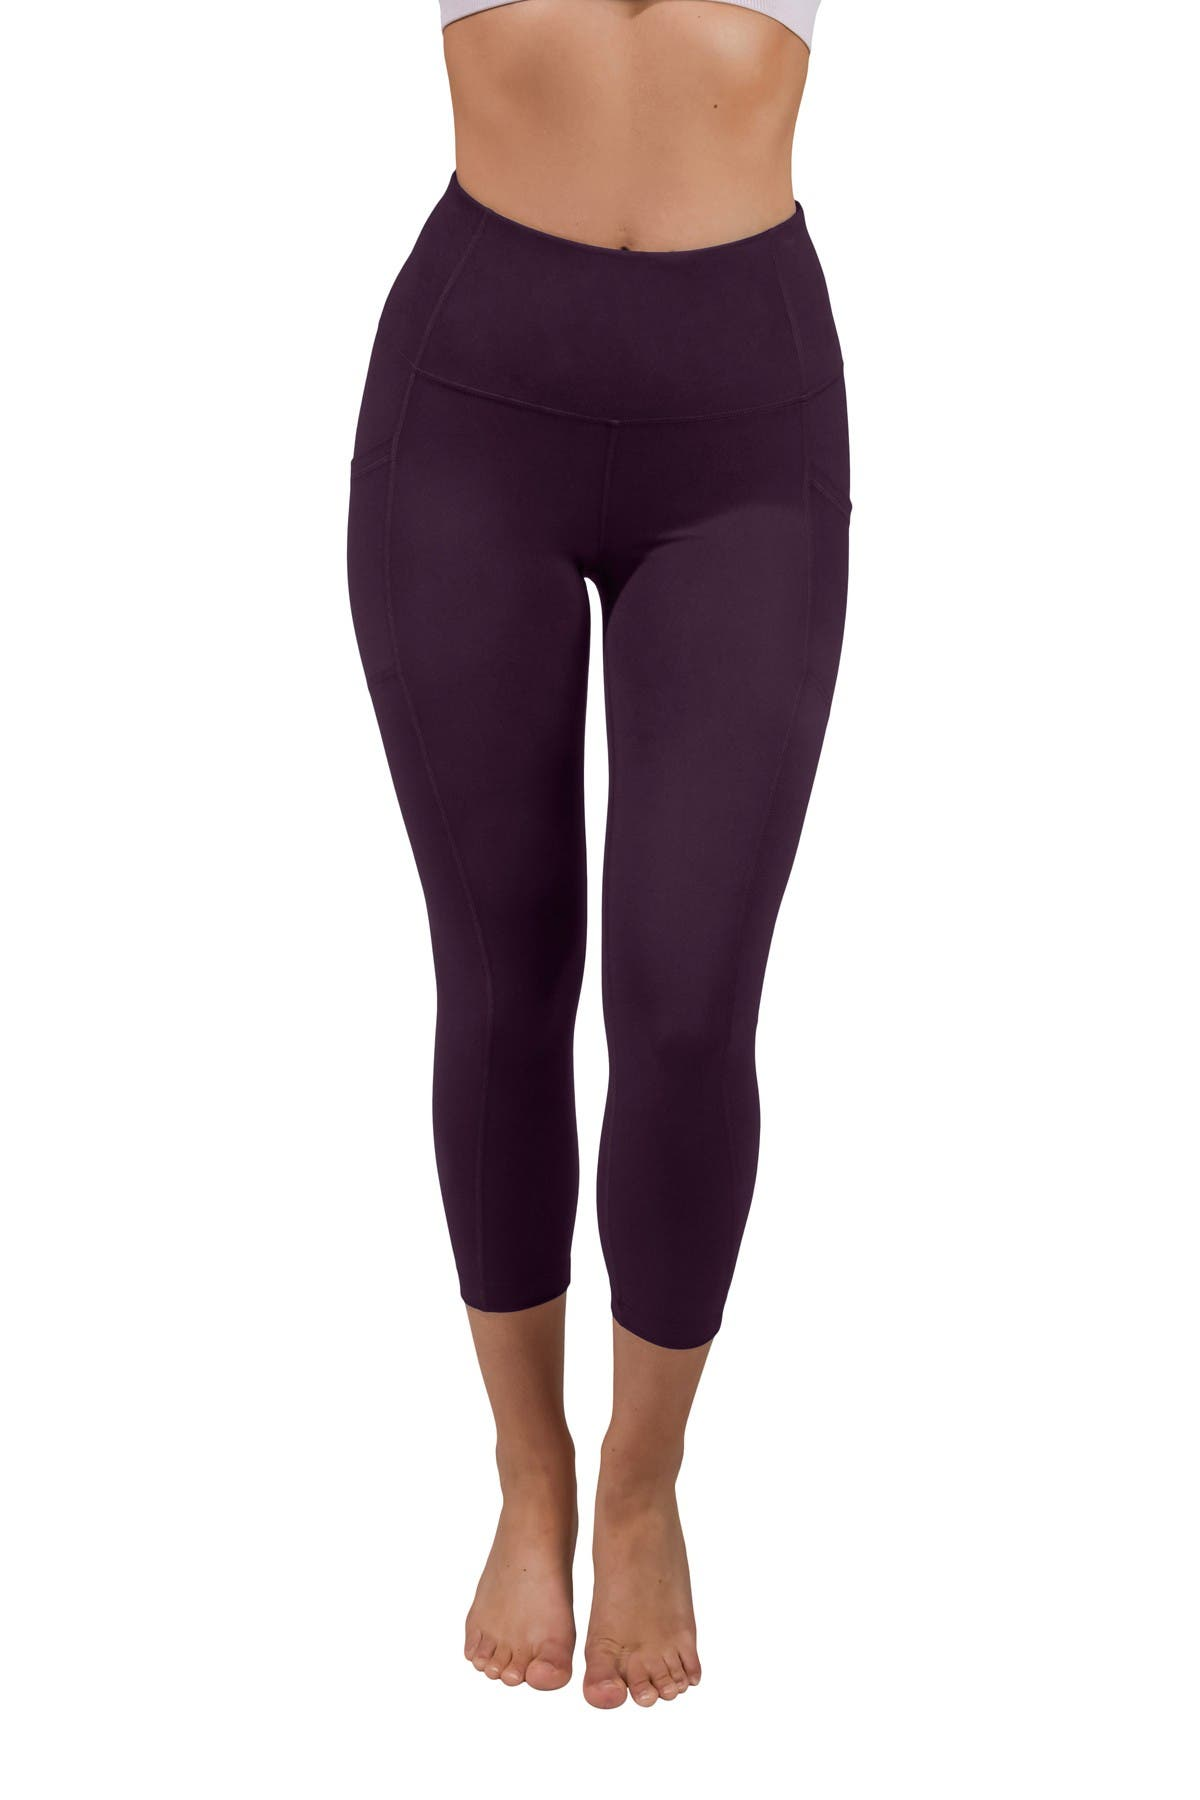 Image of 90 Degree By Reflex Lux High Rise Side Pocket Capri Leggings